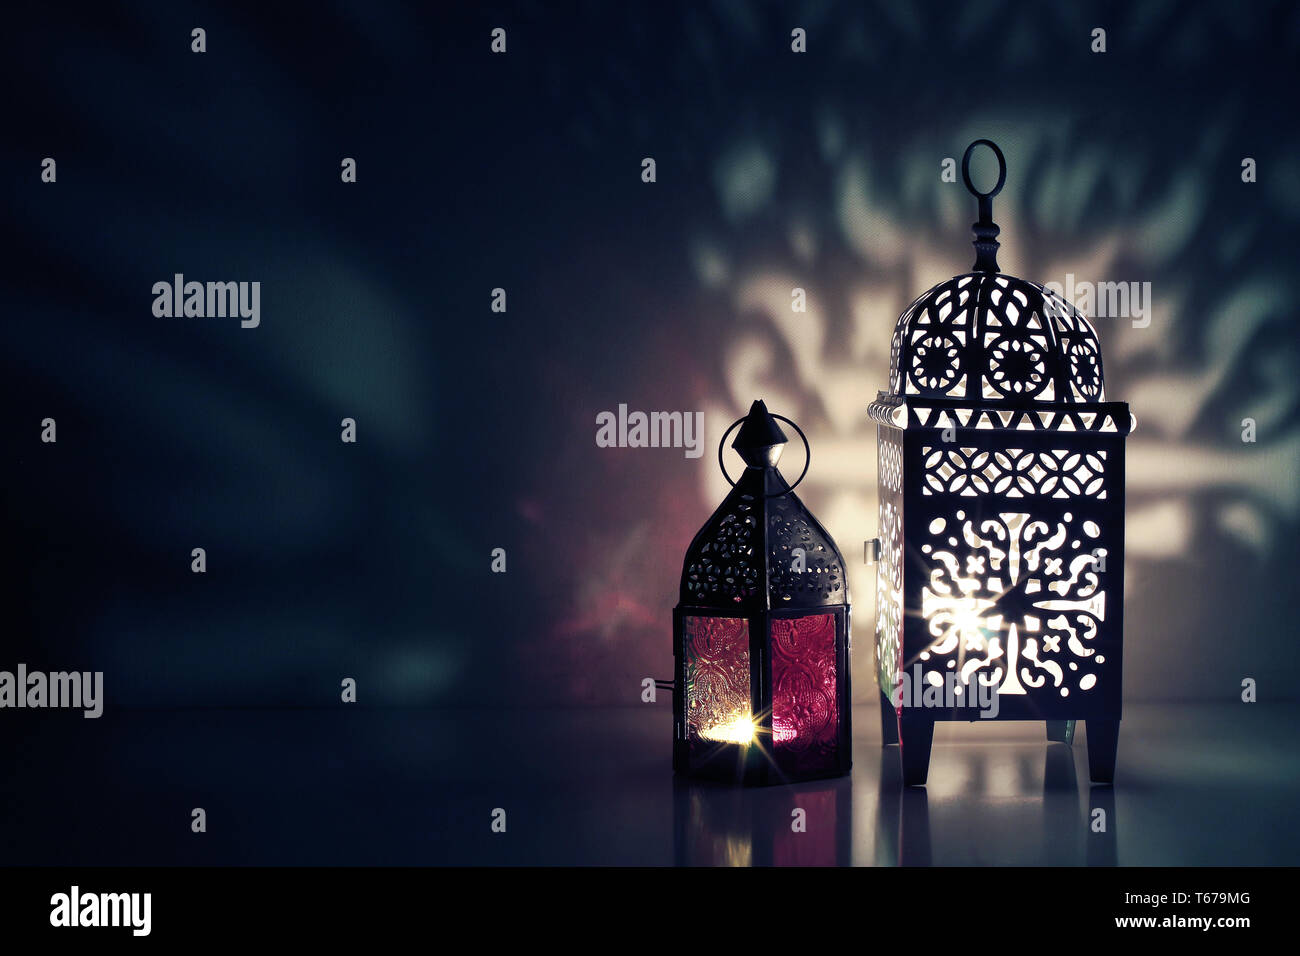 Moroccan ornamental lanterns on the table glowing at night. Greeting card, invitation for Muslim holy month Ramadan Kareem. Festive blue background - Stock Image